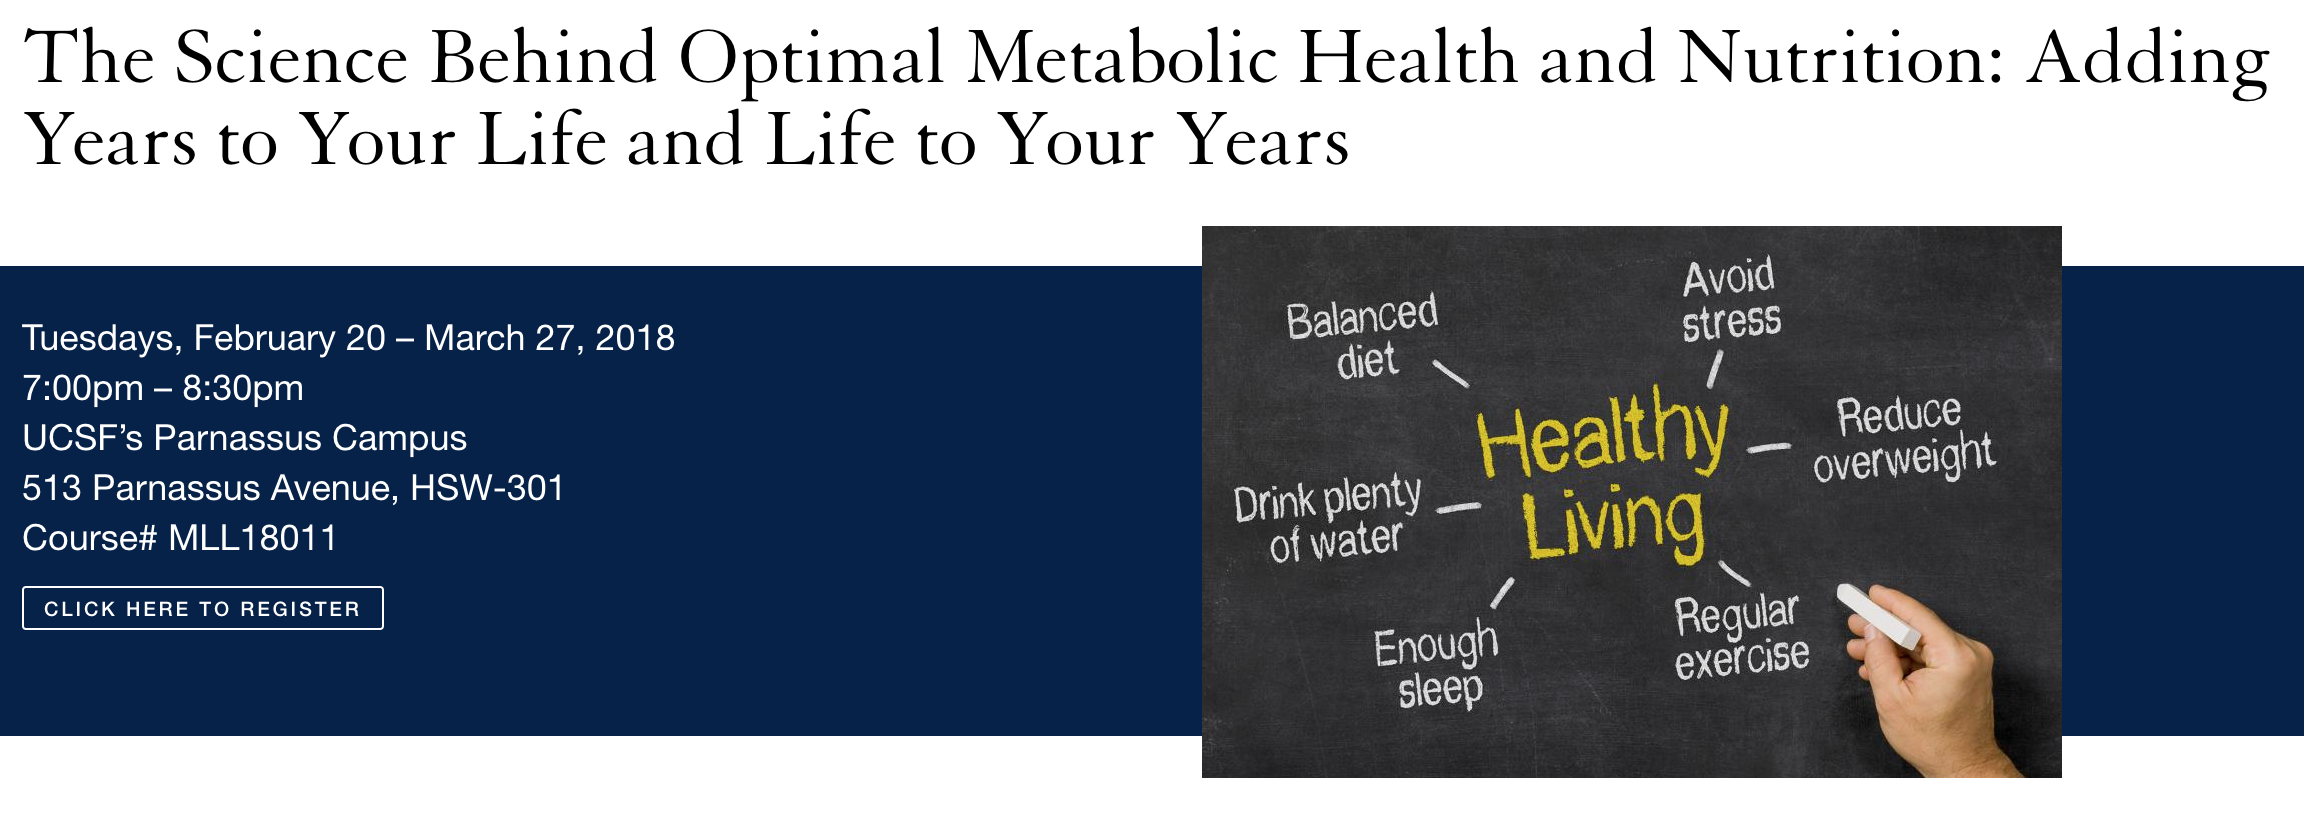 Metabolic Health and Nutrition | impacts social